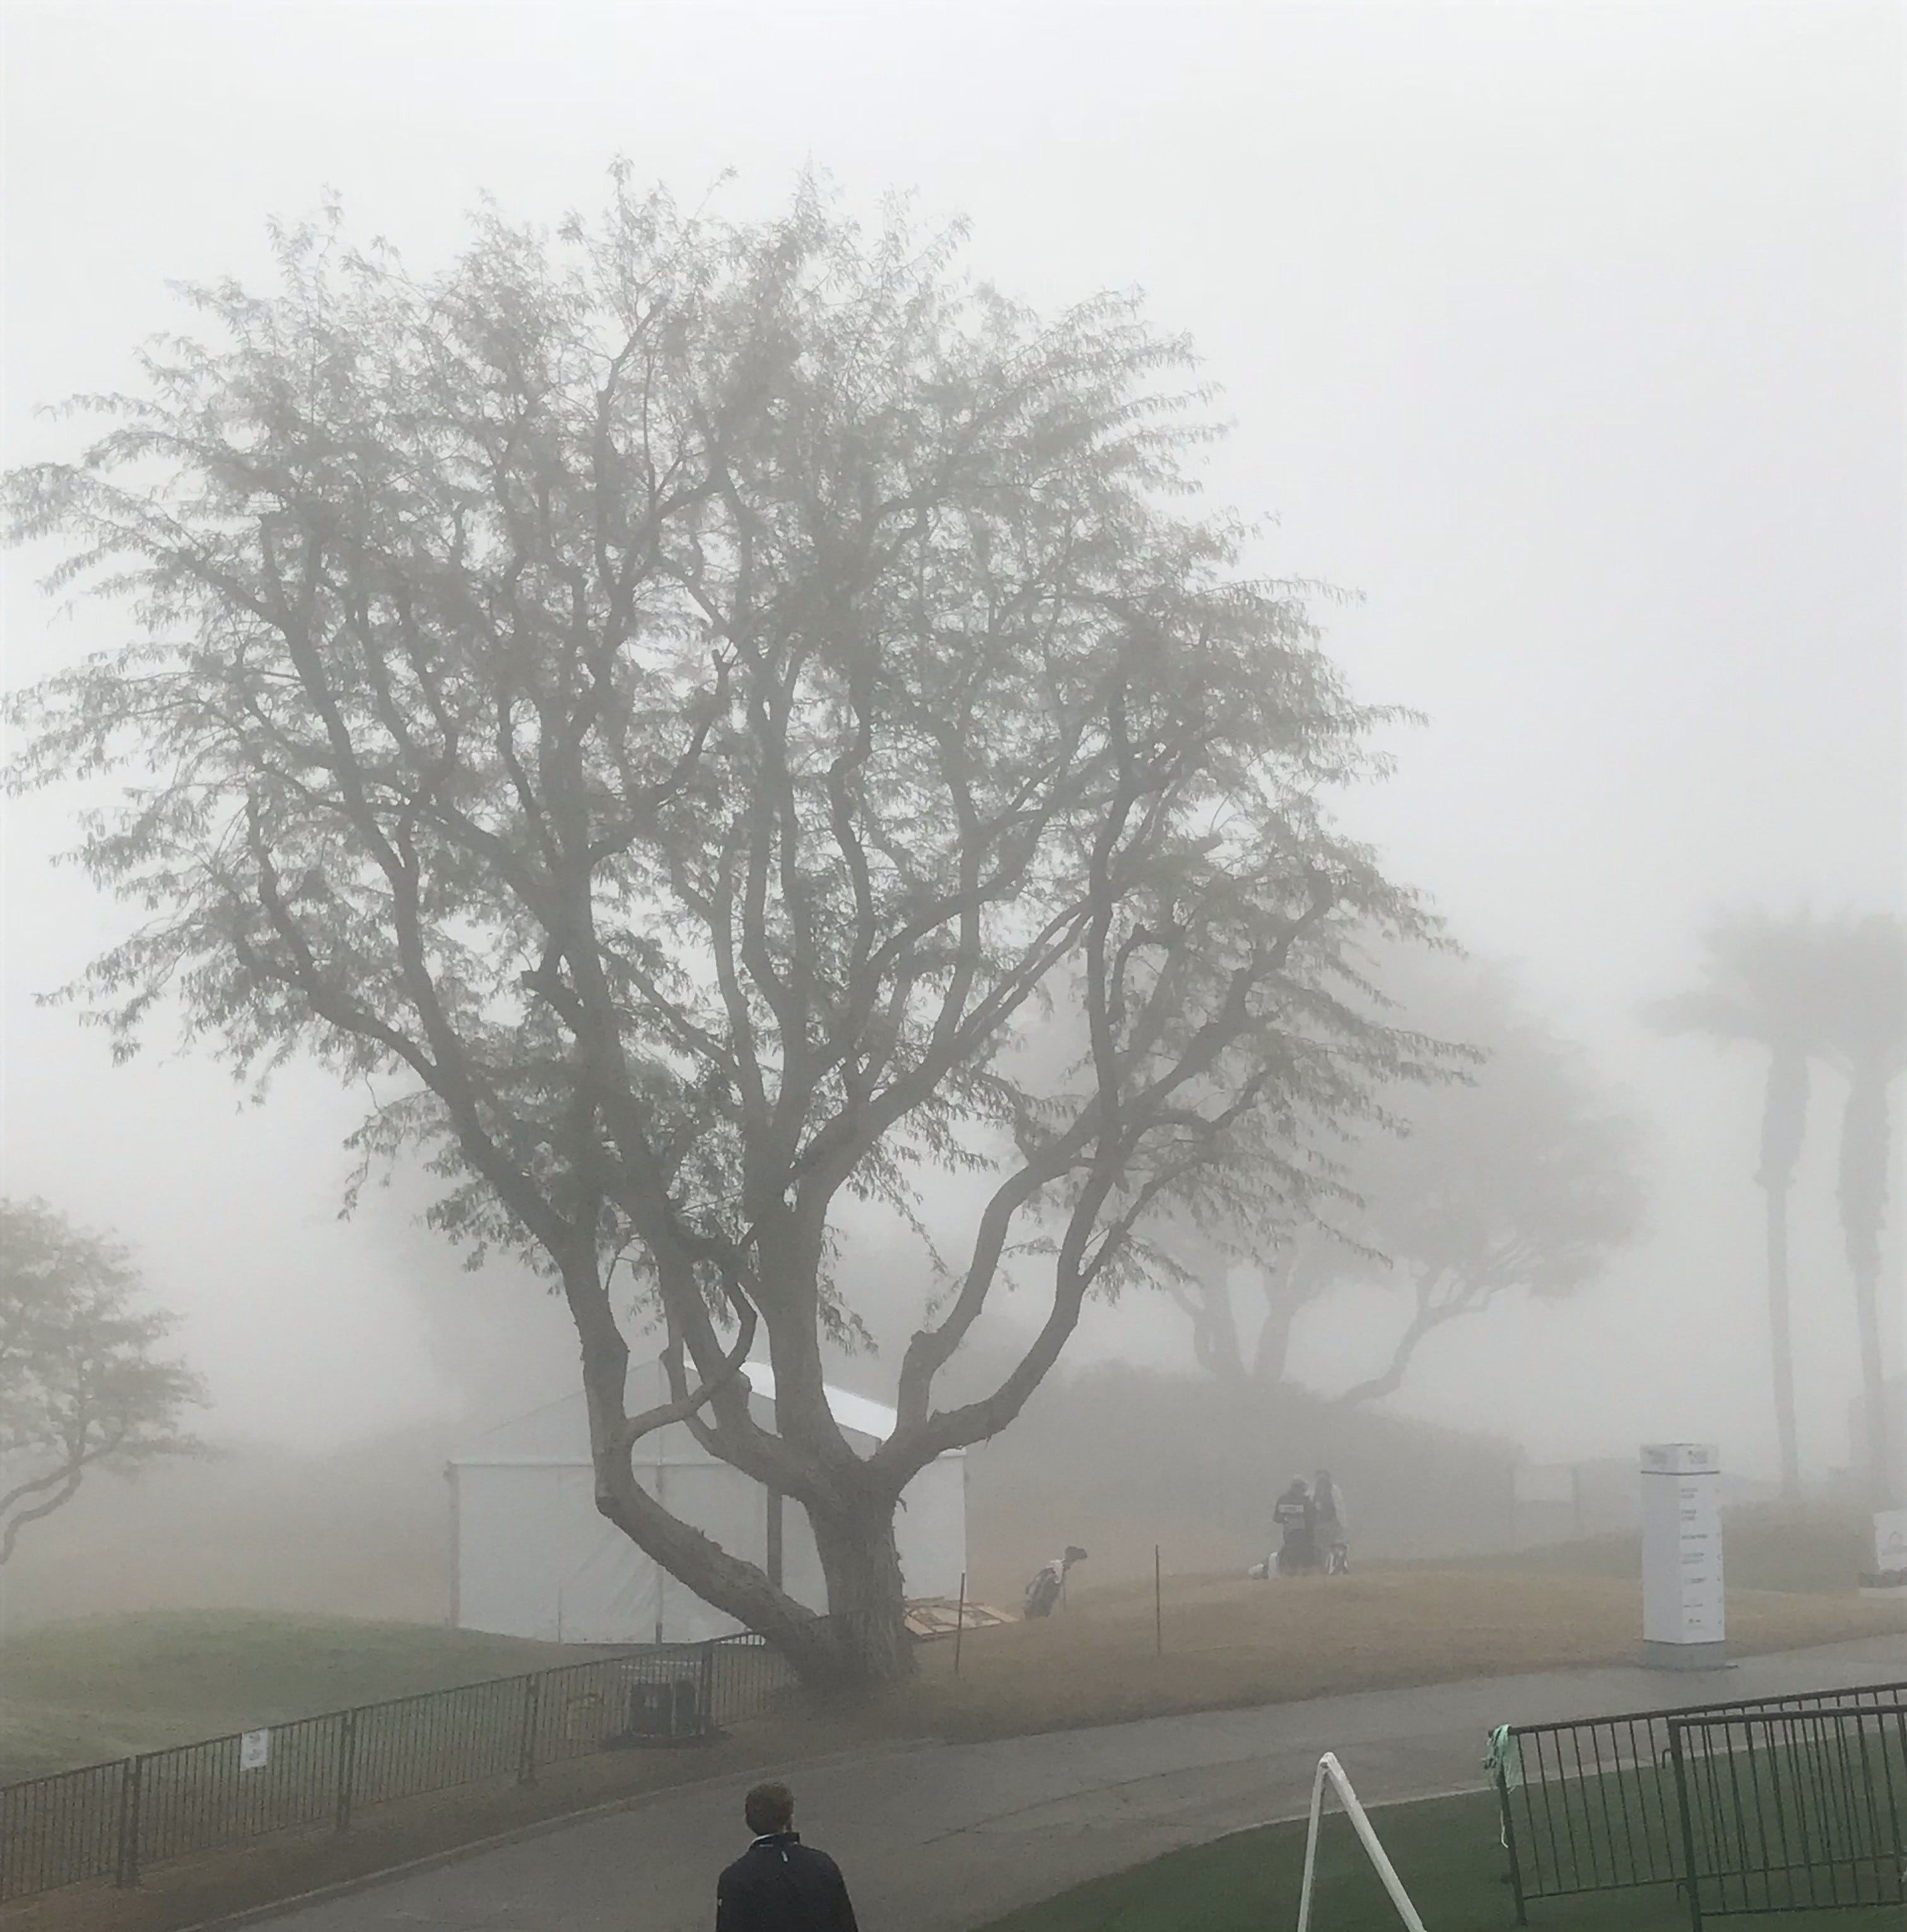 Heavy fog delays first round of Desert Classic; tee times moved back for all 3 courses